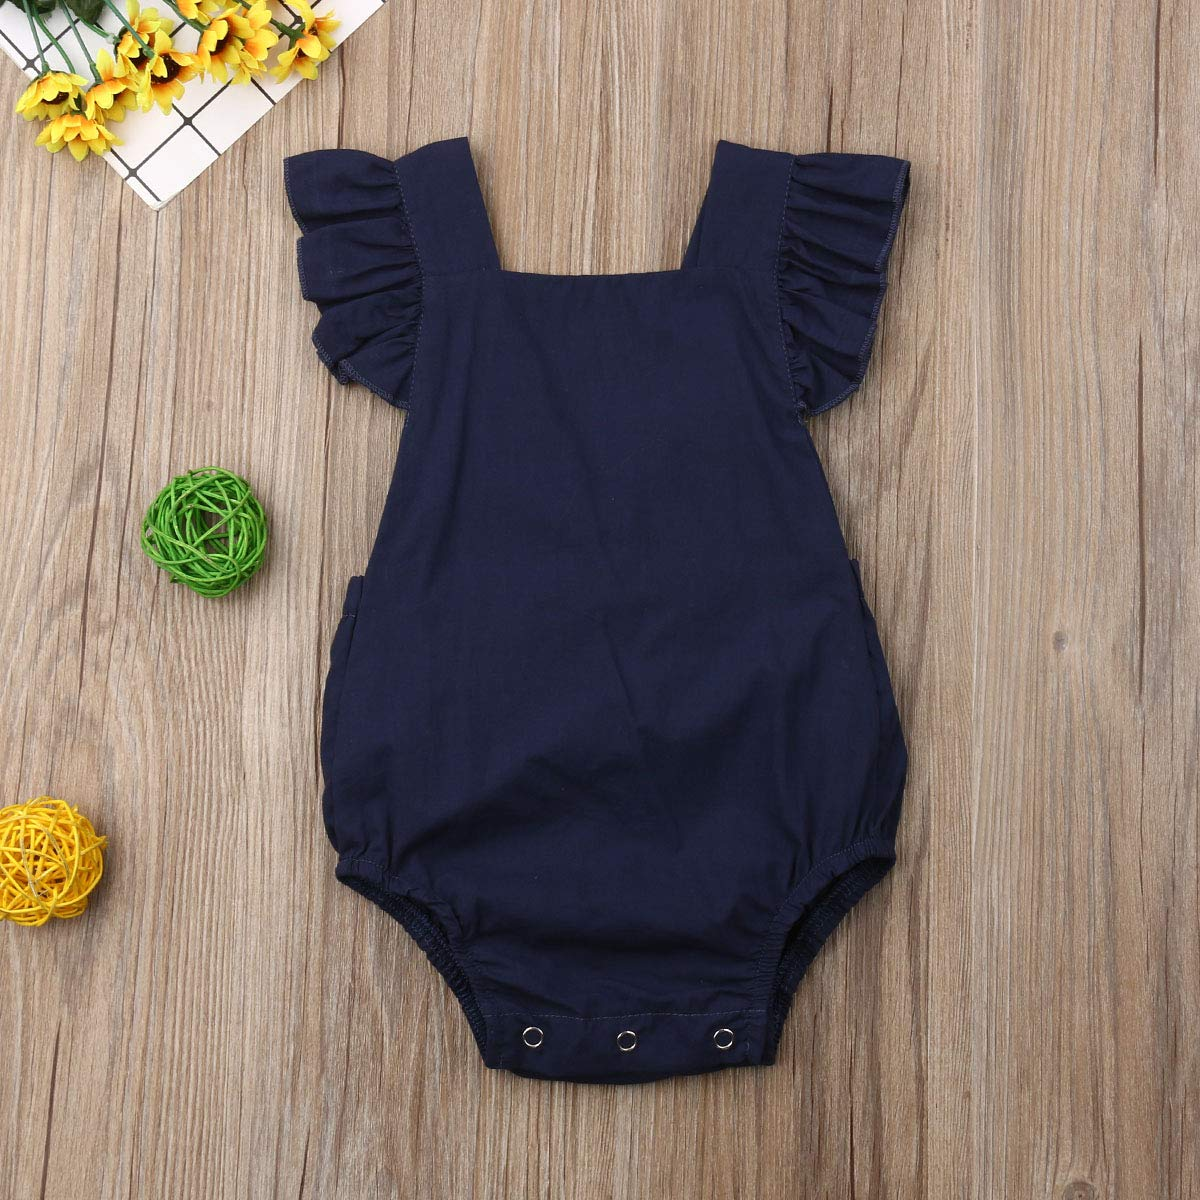 Infant Girl Clothes One Piece Sleeveless Romper Jumpsuit Baby Bodysuit Summer Clothes